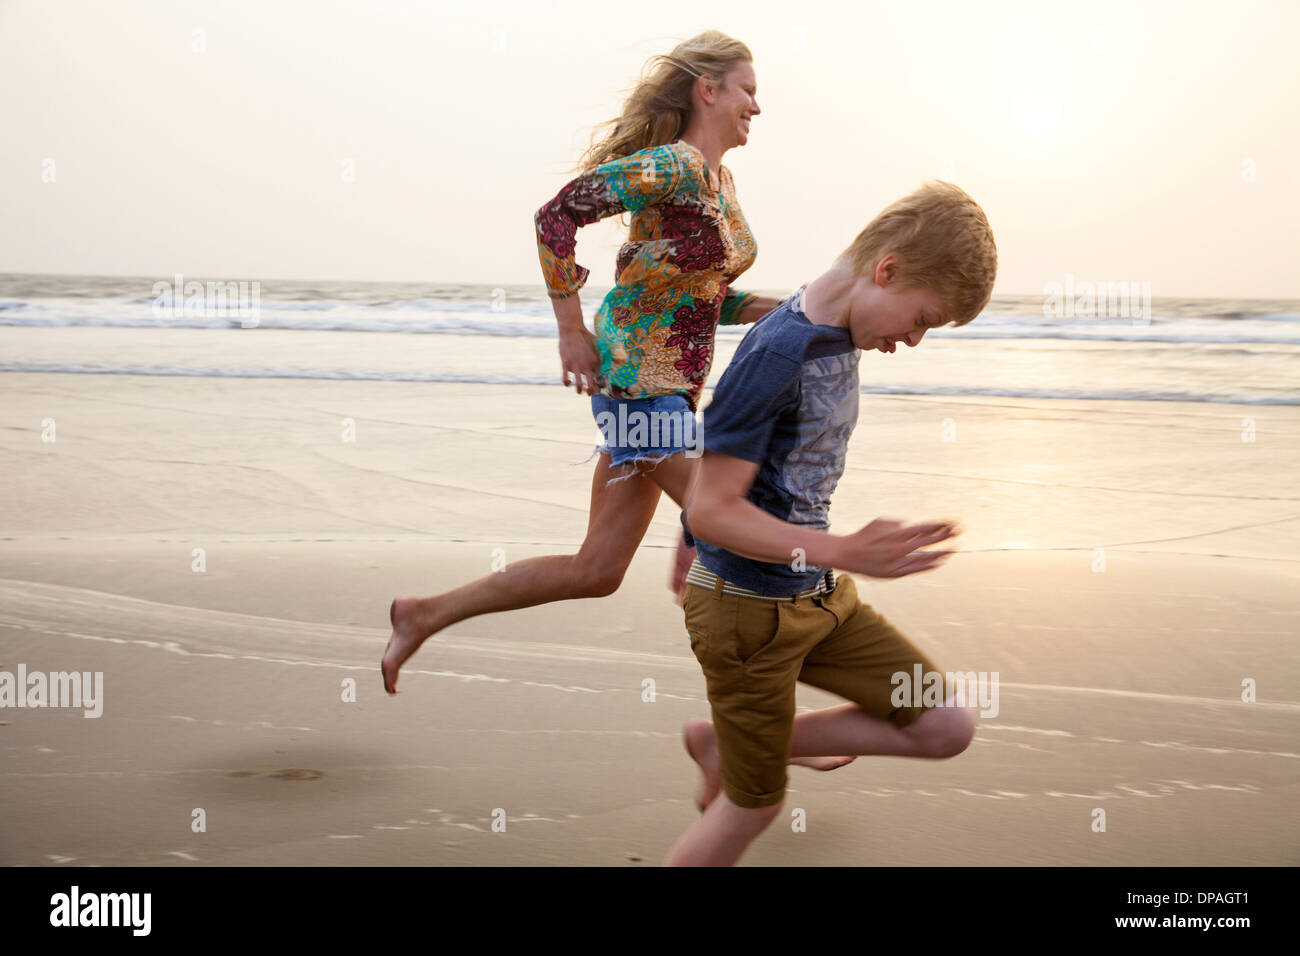 Mother and son running on beach - Stock Image